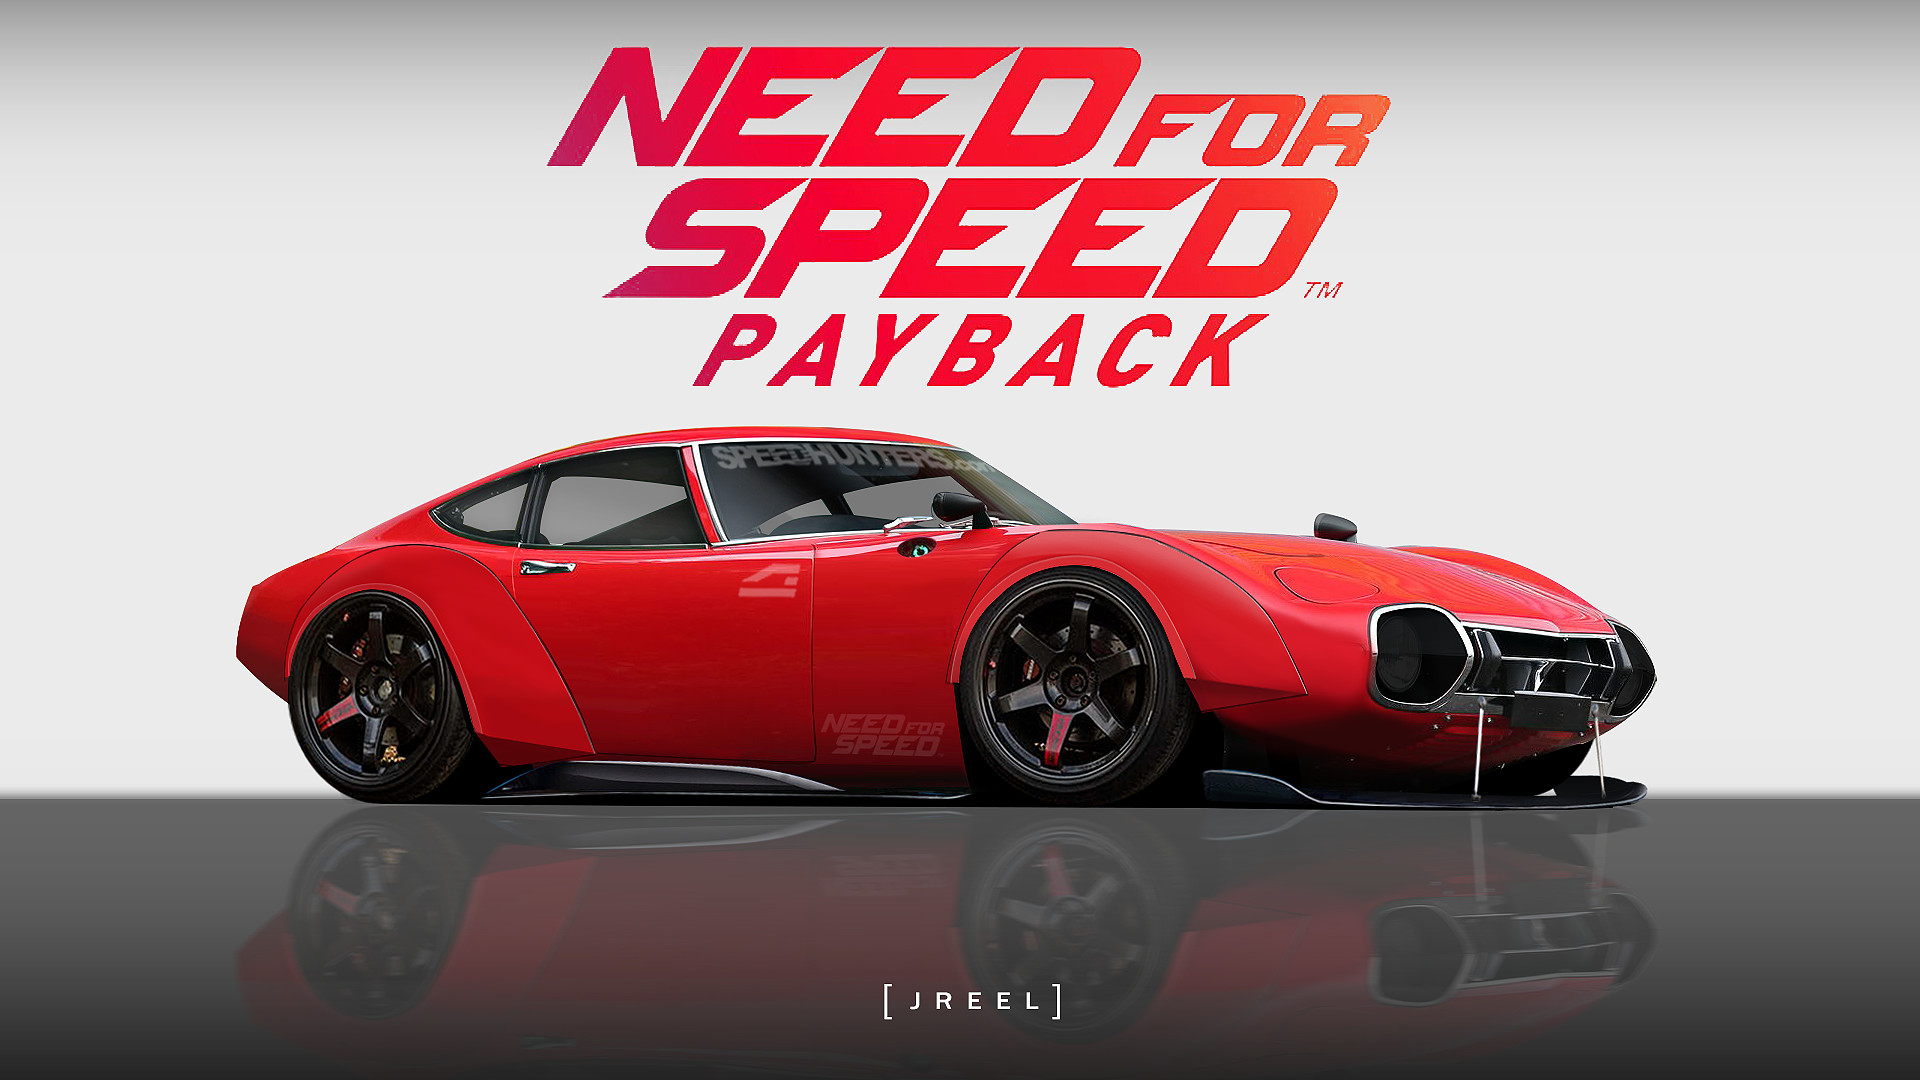 Download Need For Speed Nfs Payback Wallpapers Read Games Reviews Play Online Games